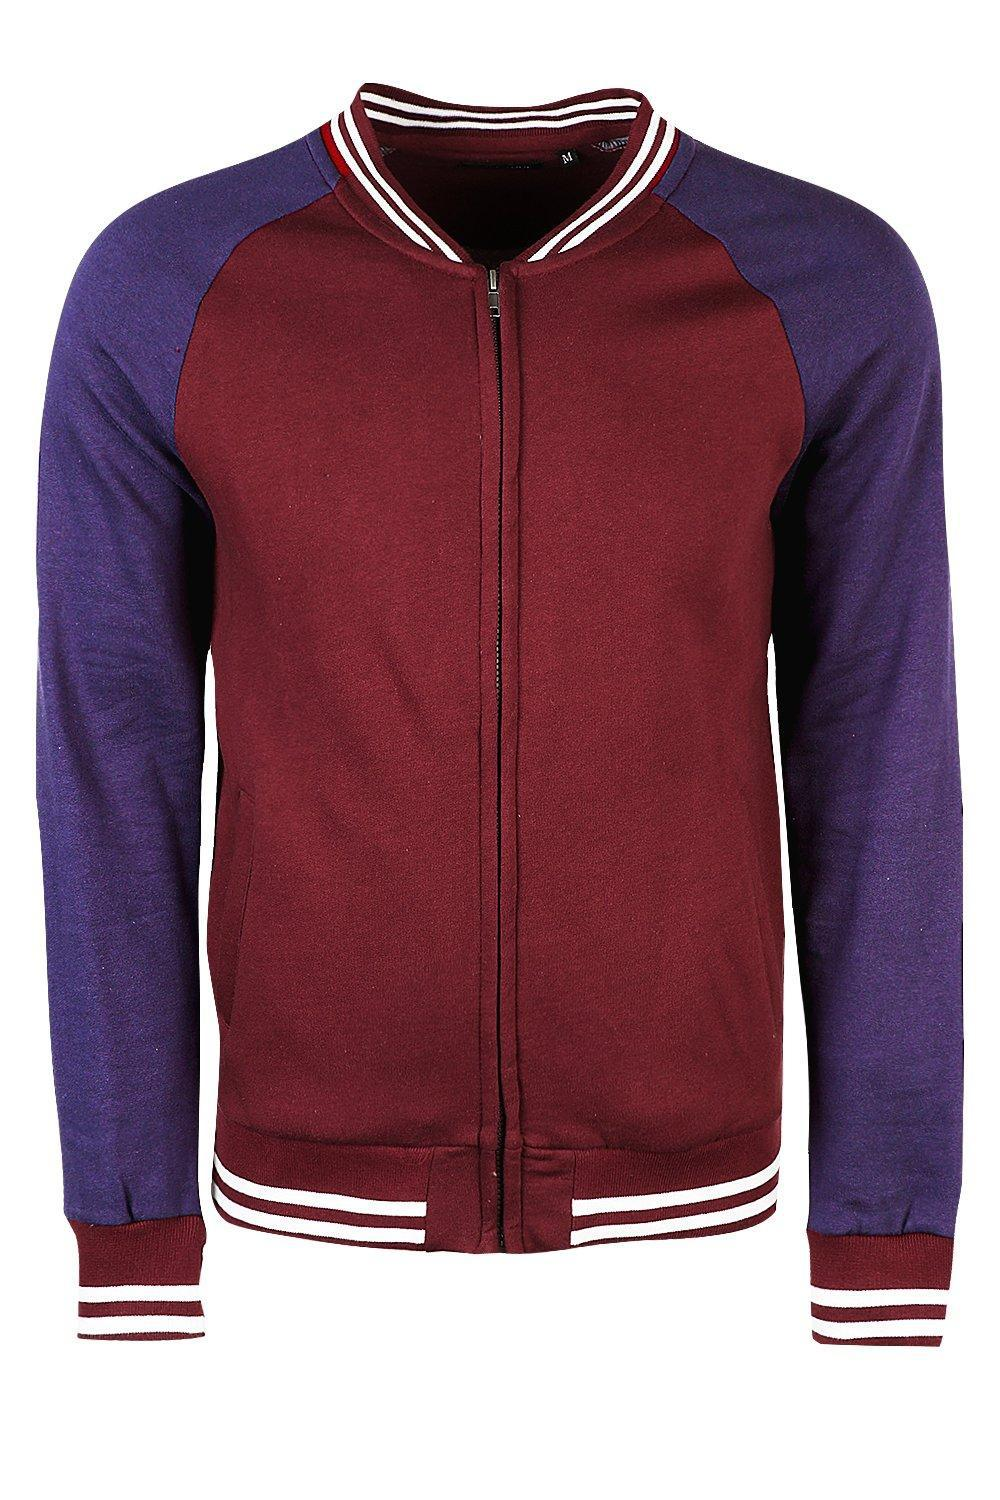 Boohoo Cotton Colour Block Jersey Bomber in Burgundy (Red) for Men